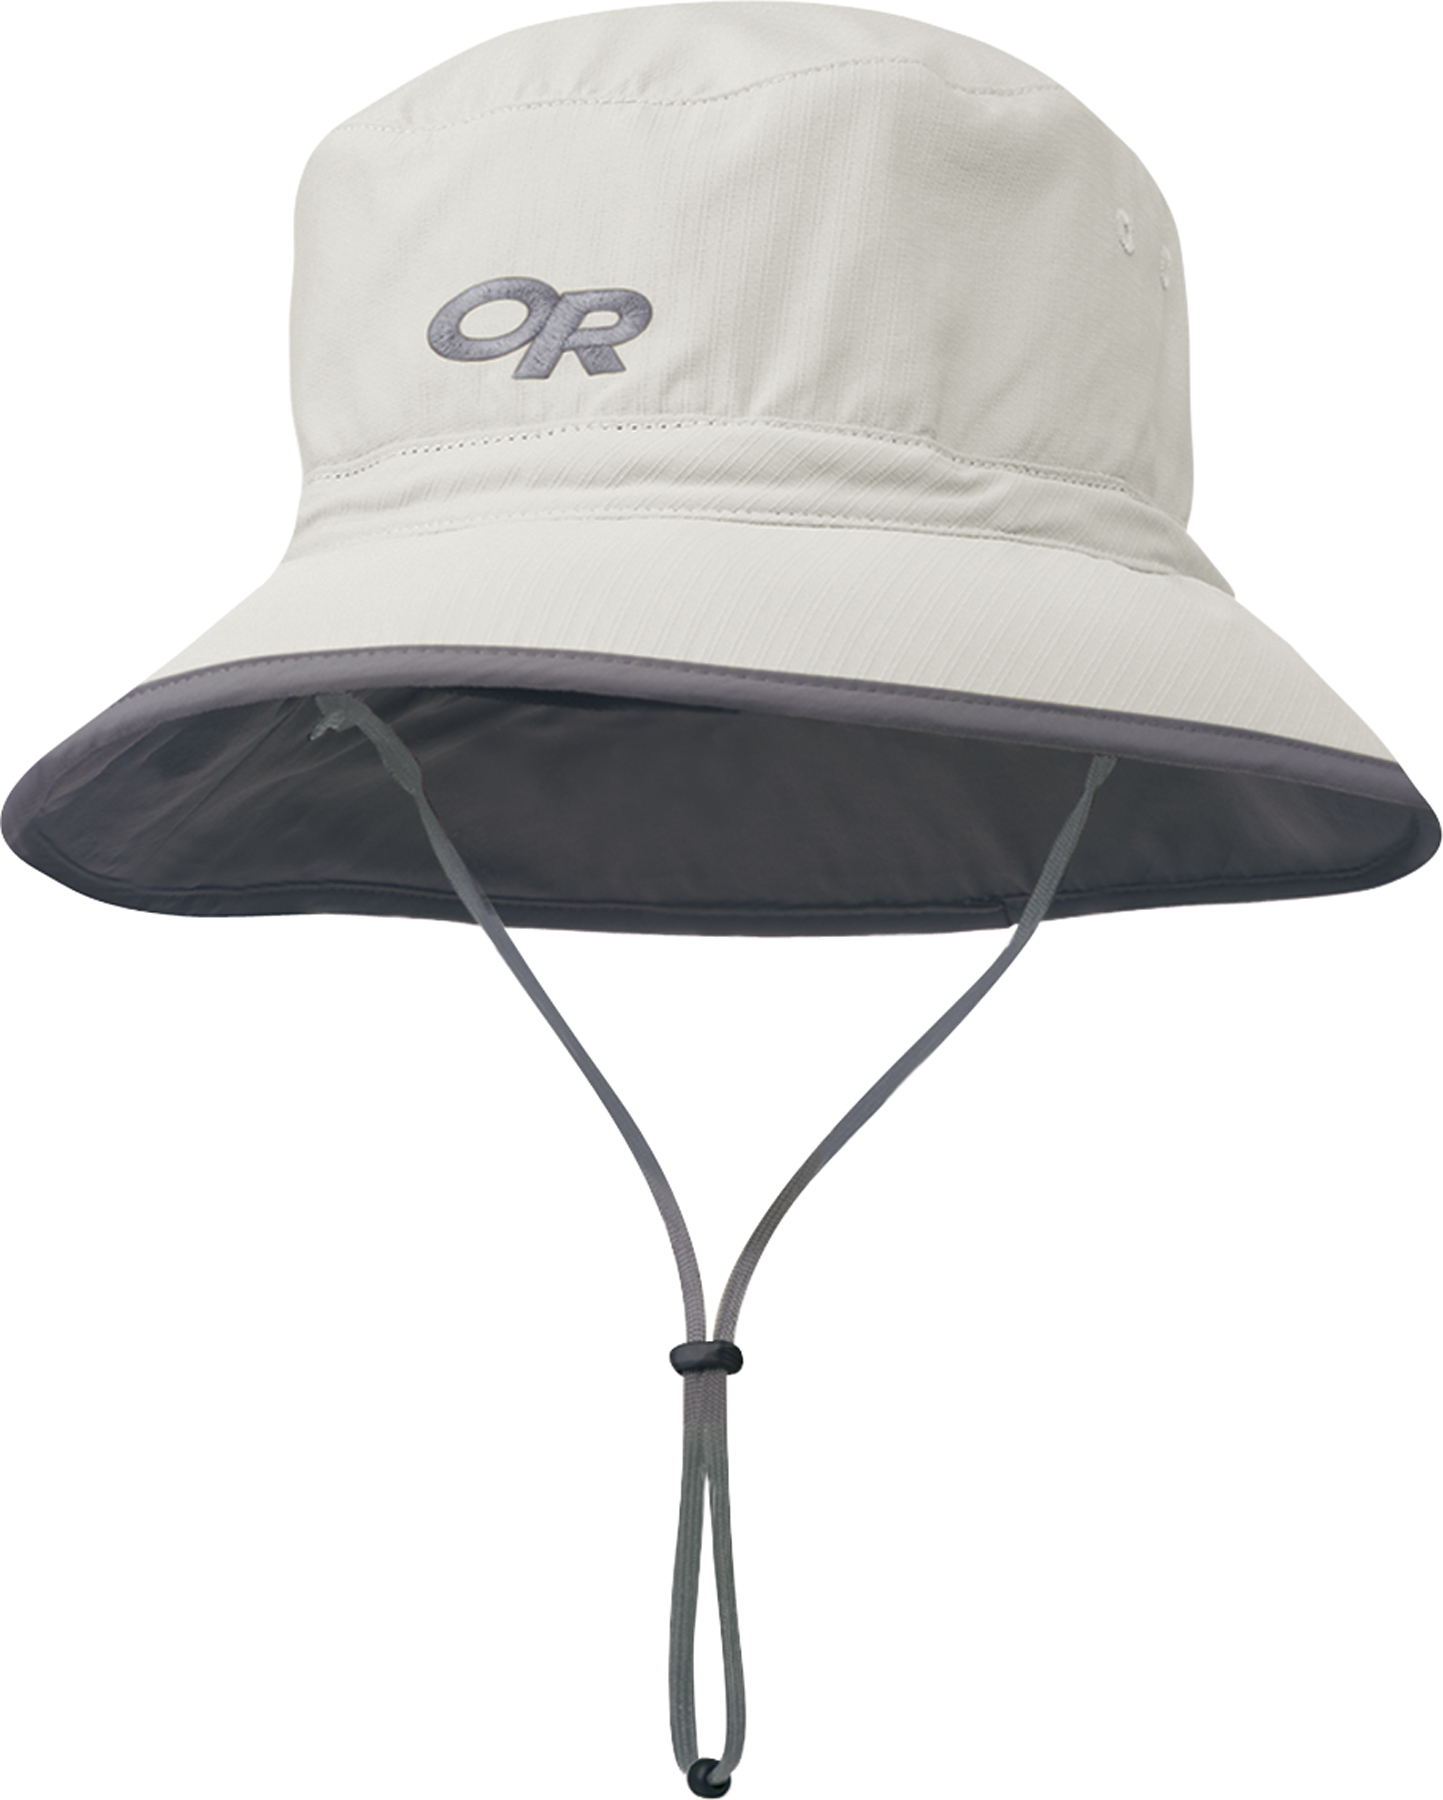 Outdoor Research Sun Bucket Hat - Unisex 7c8d1abfb33